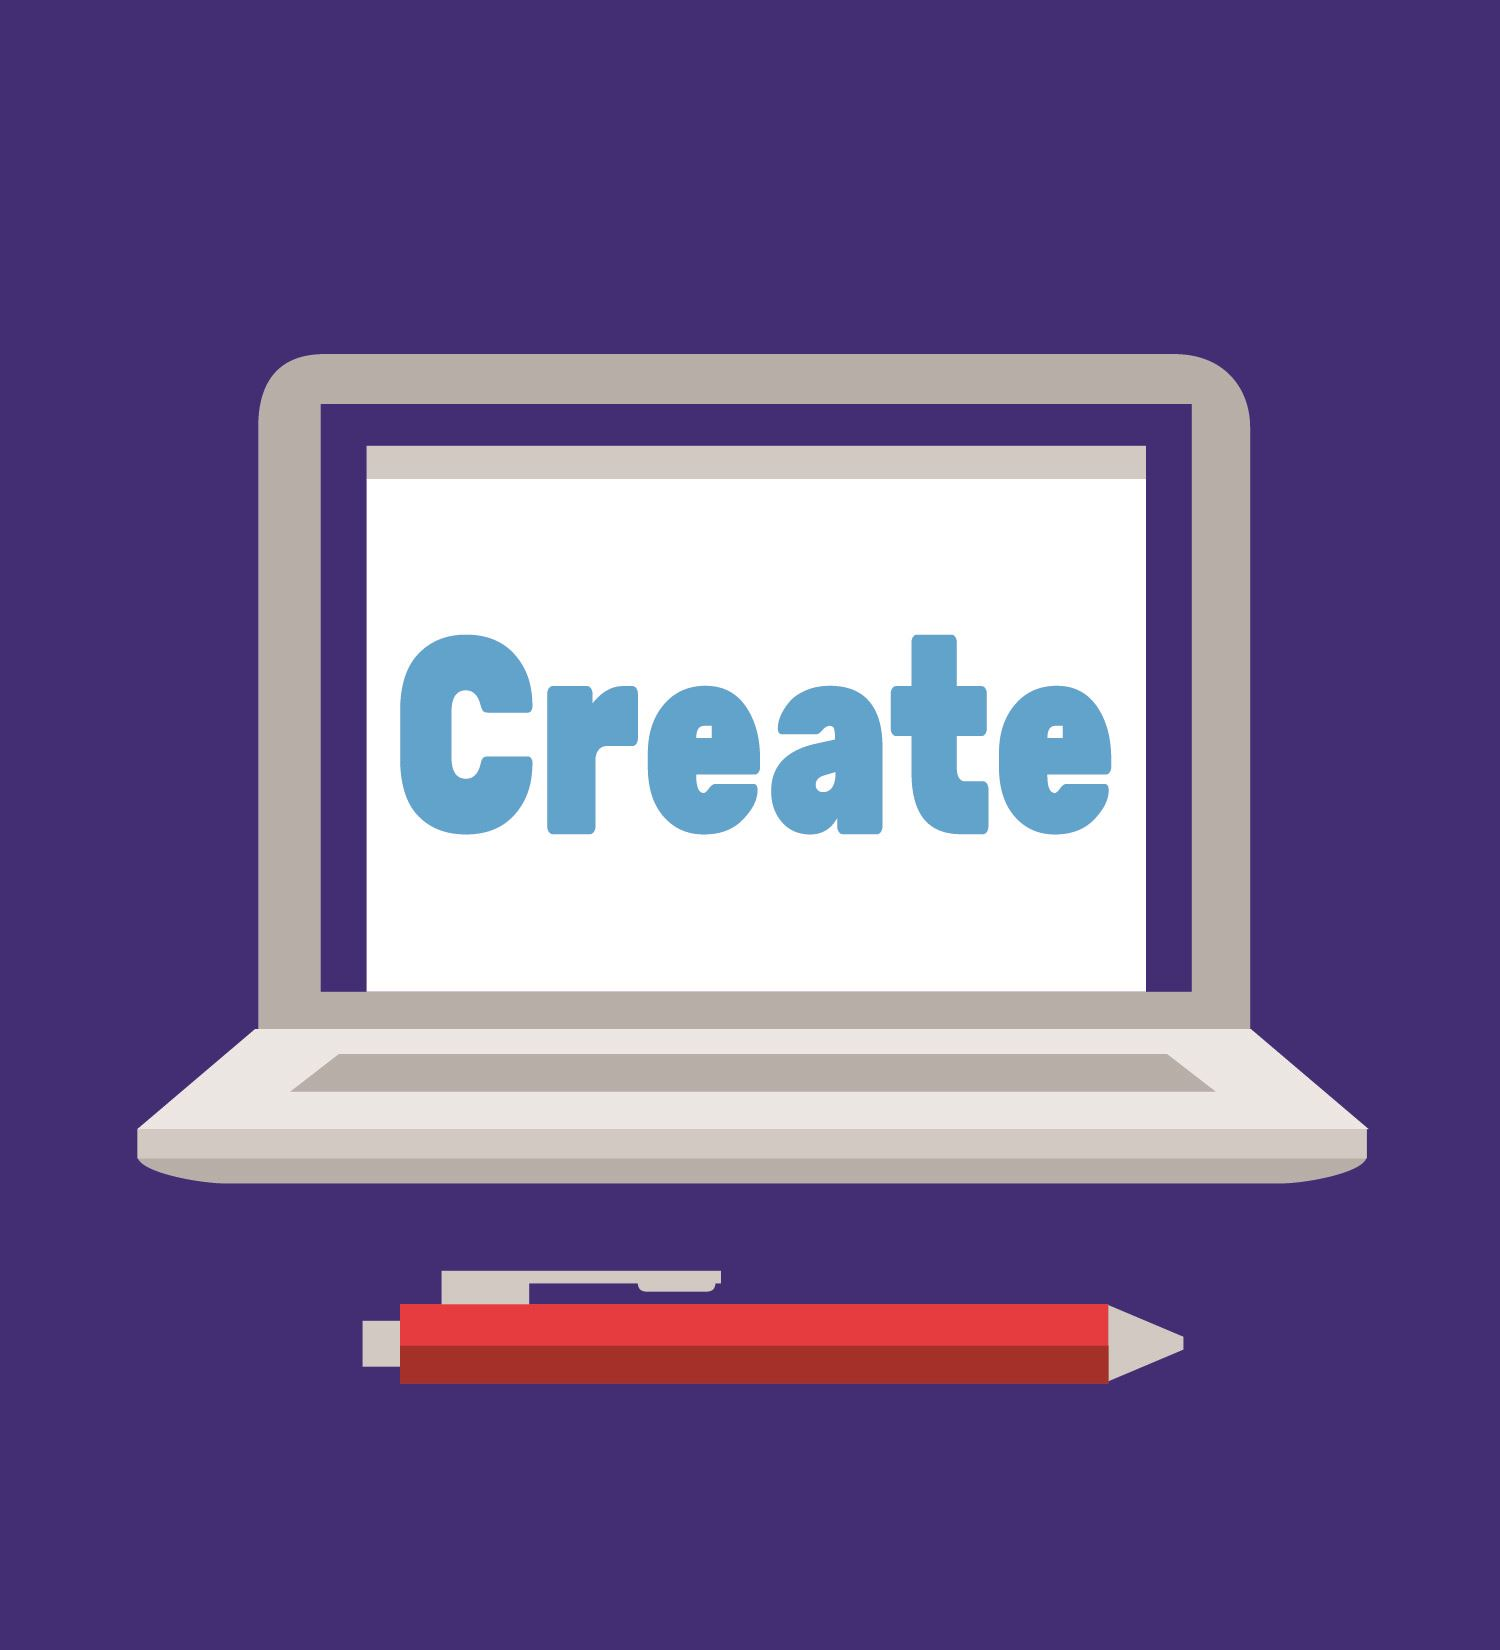 Cartoon image of a laptop with the word 'create' displayed on the screen